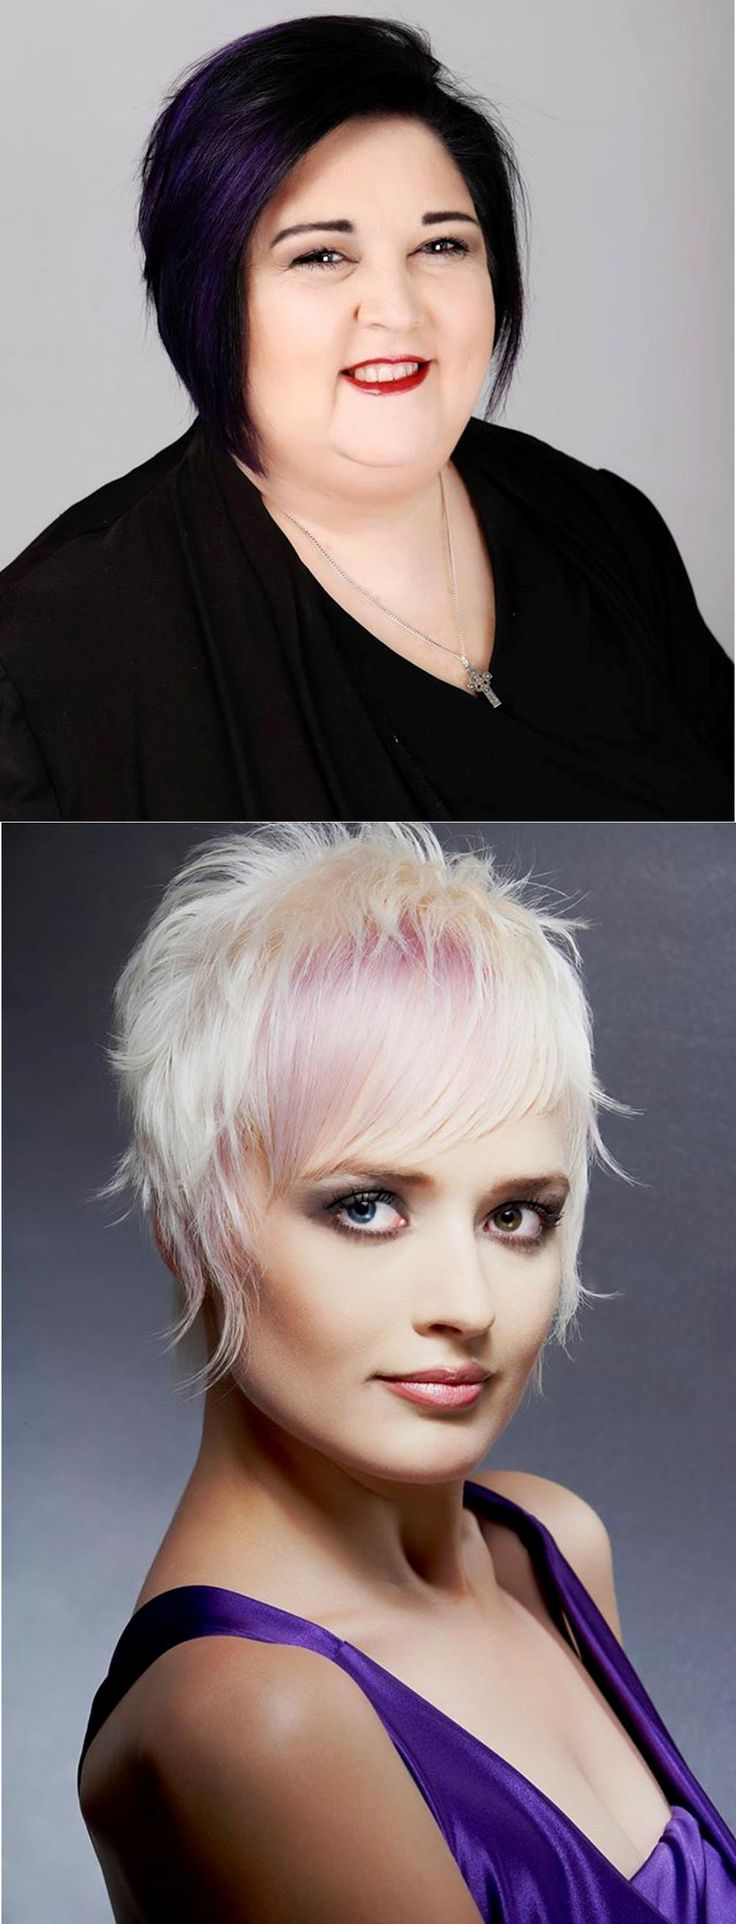 Introducing Pasquale Owner and Premier Stylist Janine Gough - She is an expert in Short Cuts and Color Corrections. For an Appointment with this Super Talented and Experienced Stylist Phone 011 391 3105/6 Kempton Park. www.pasquale.co.za. #pasquale.